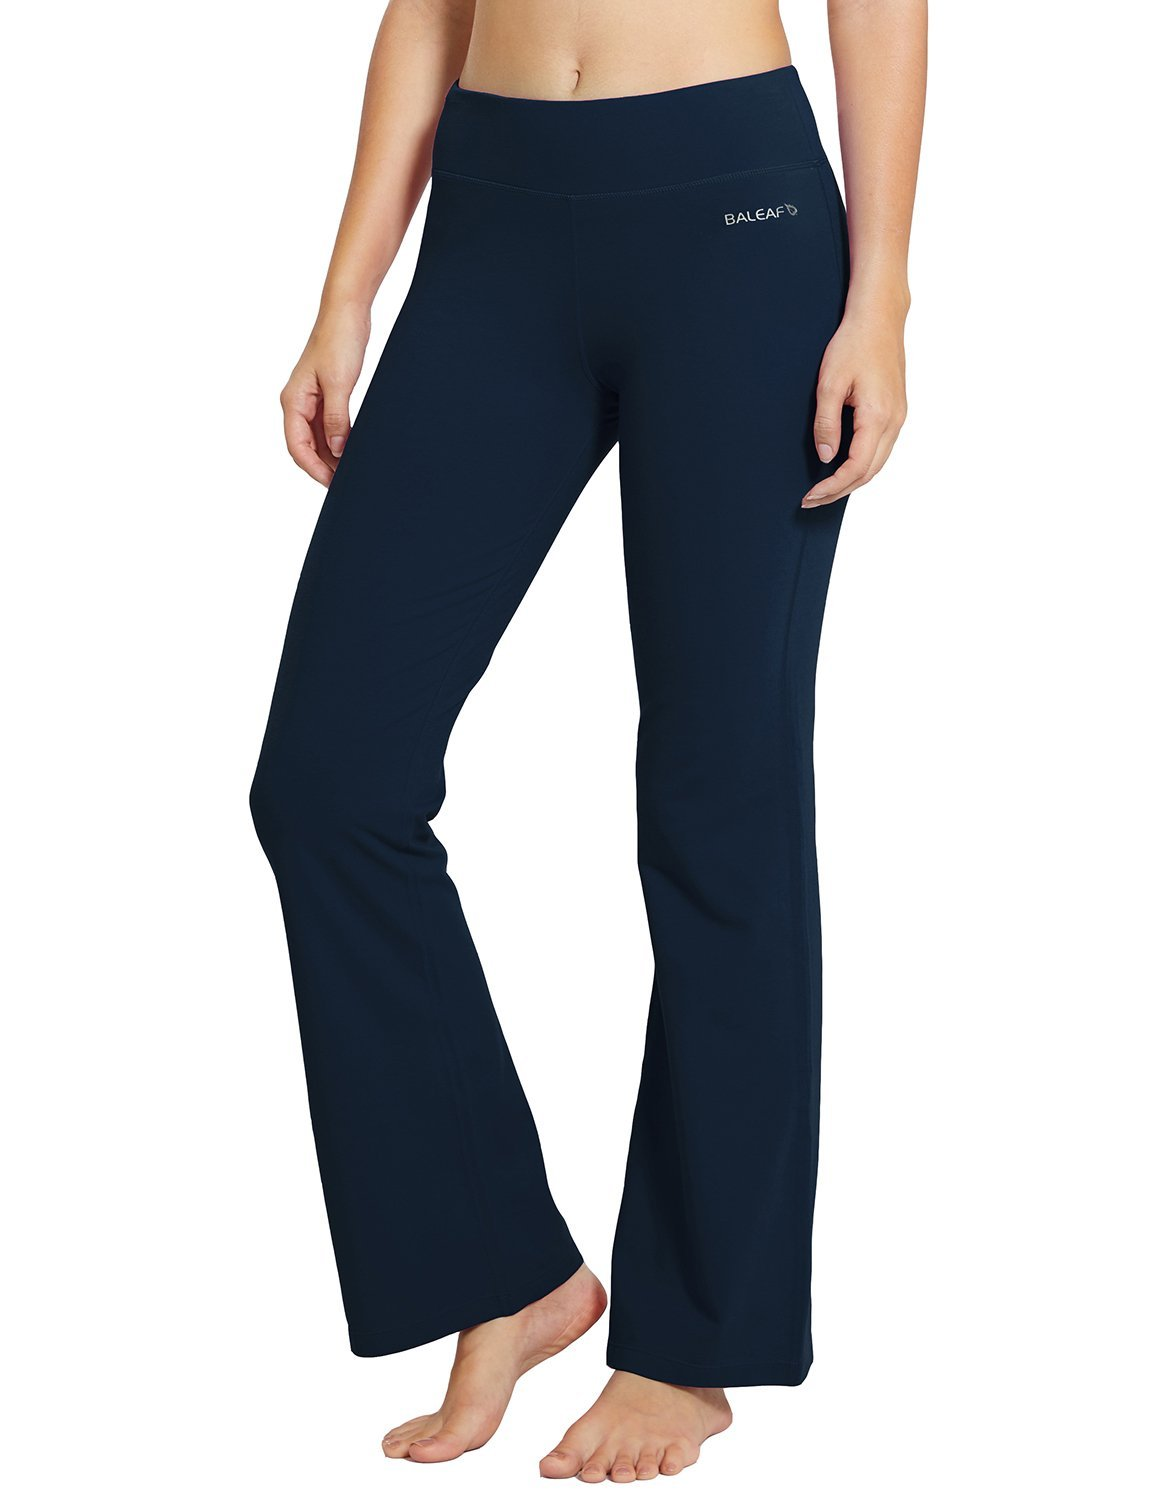 Baleaf Women's Yoga Bootleg Pants Inner Pocket